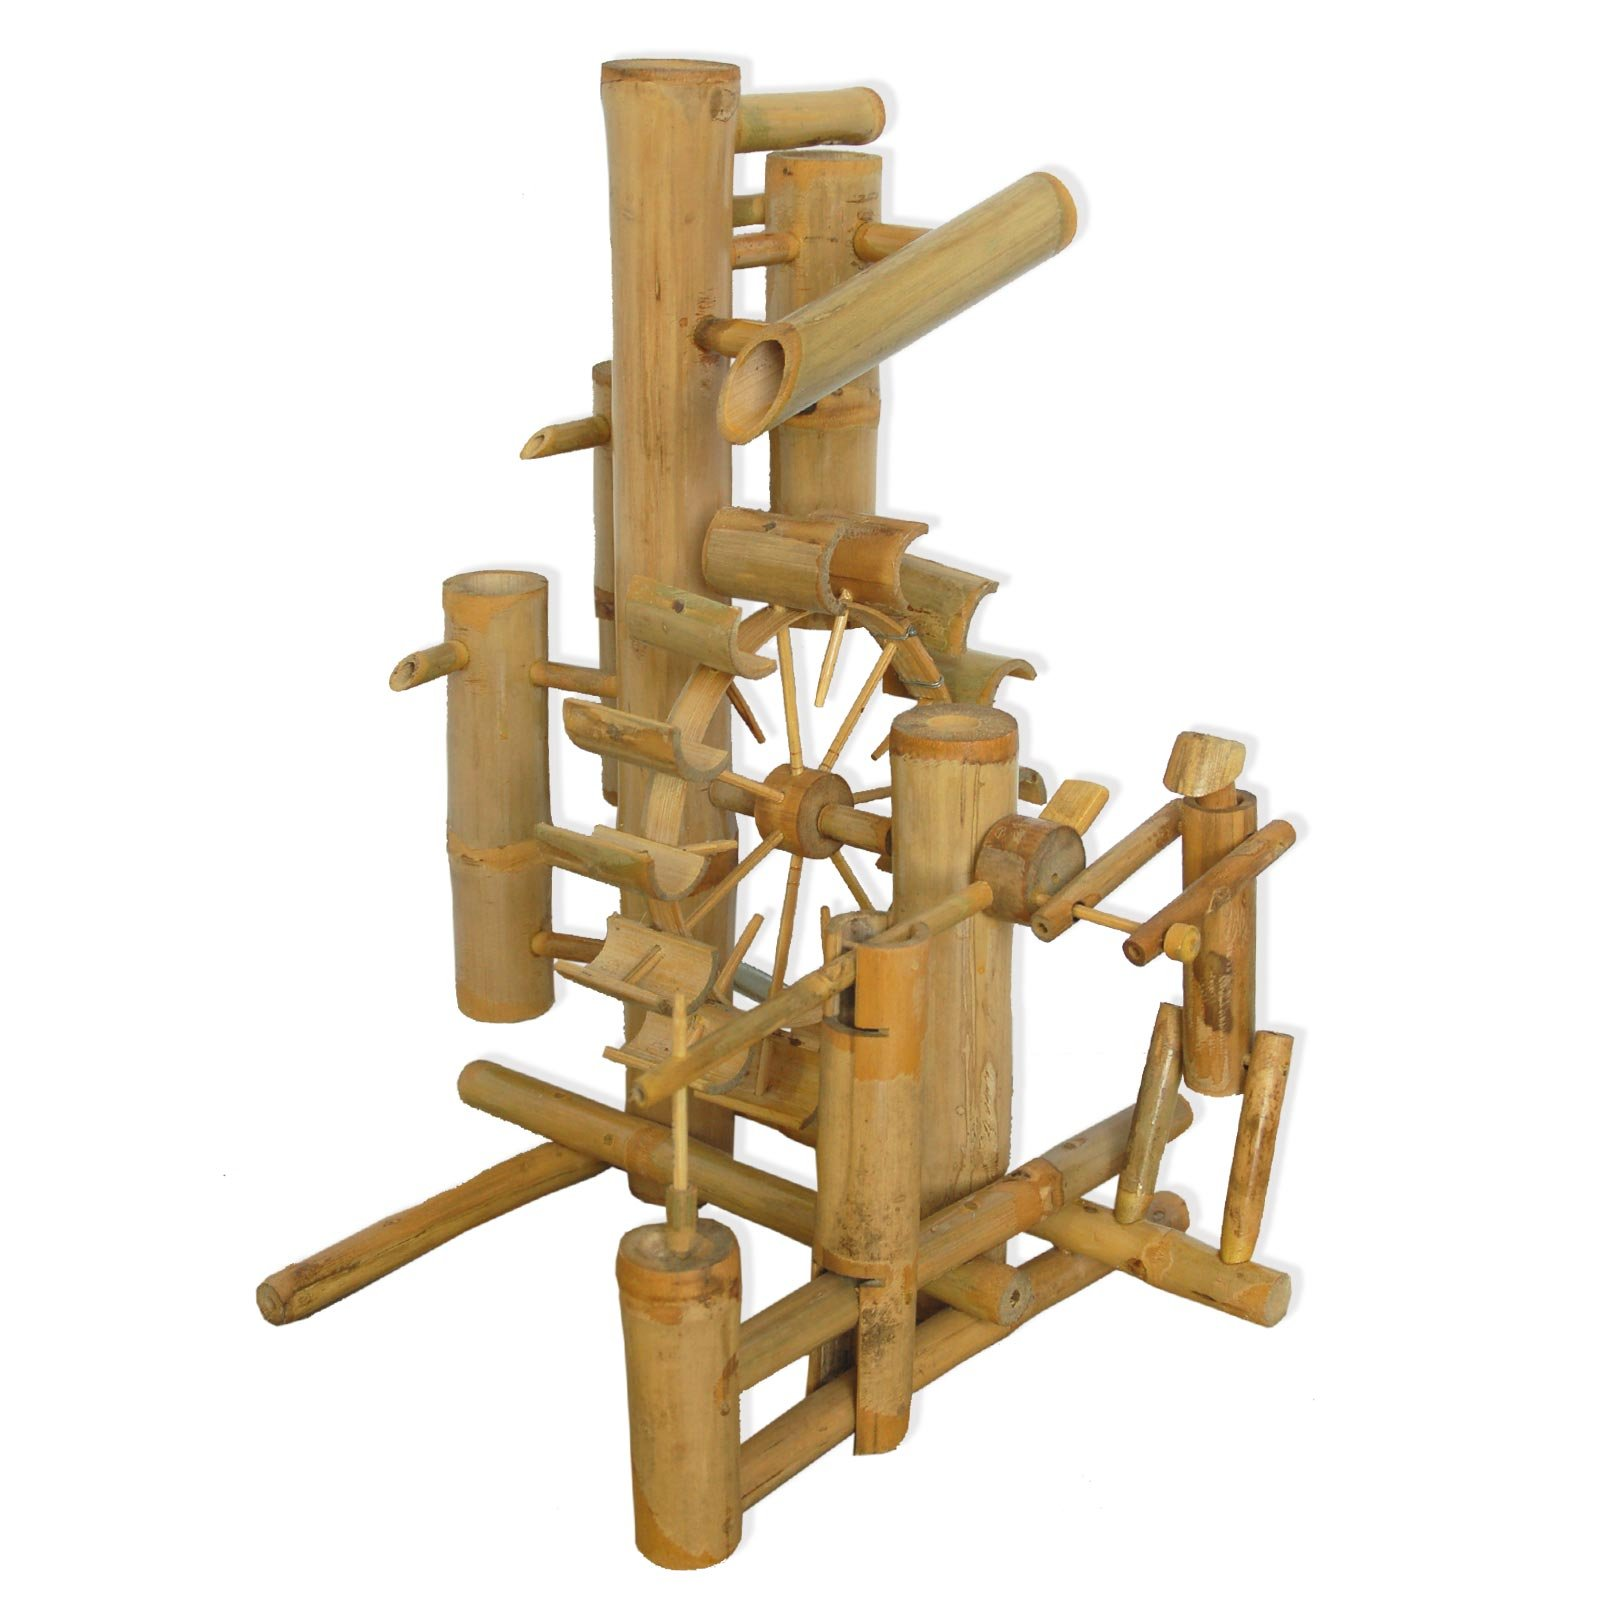 Bamboo fountain, water game, watefall, handmade, imported from Thailand (12039)